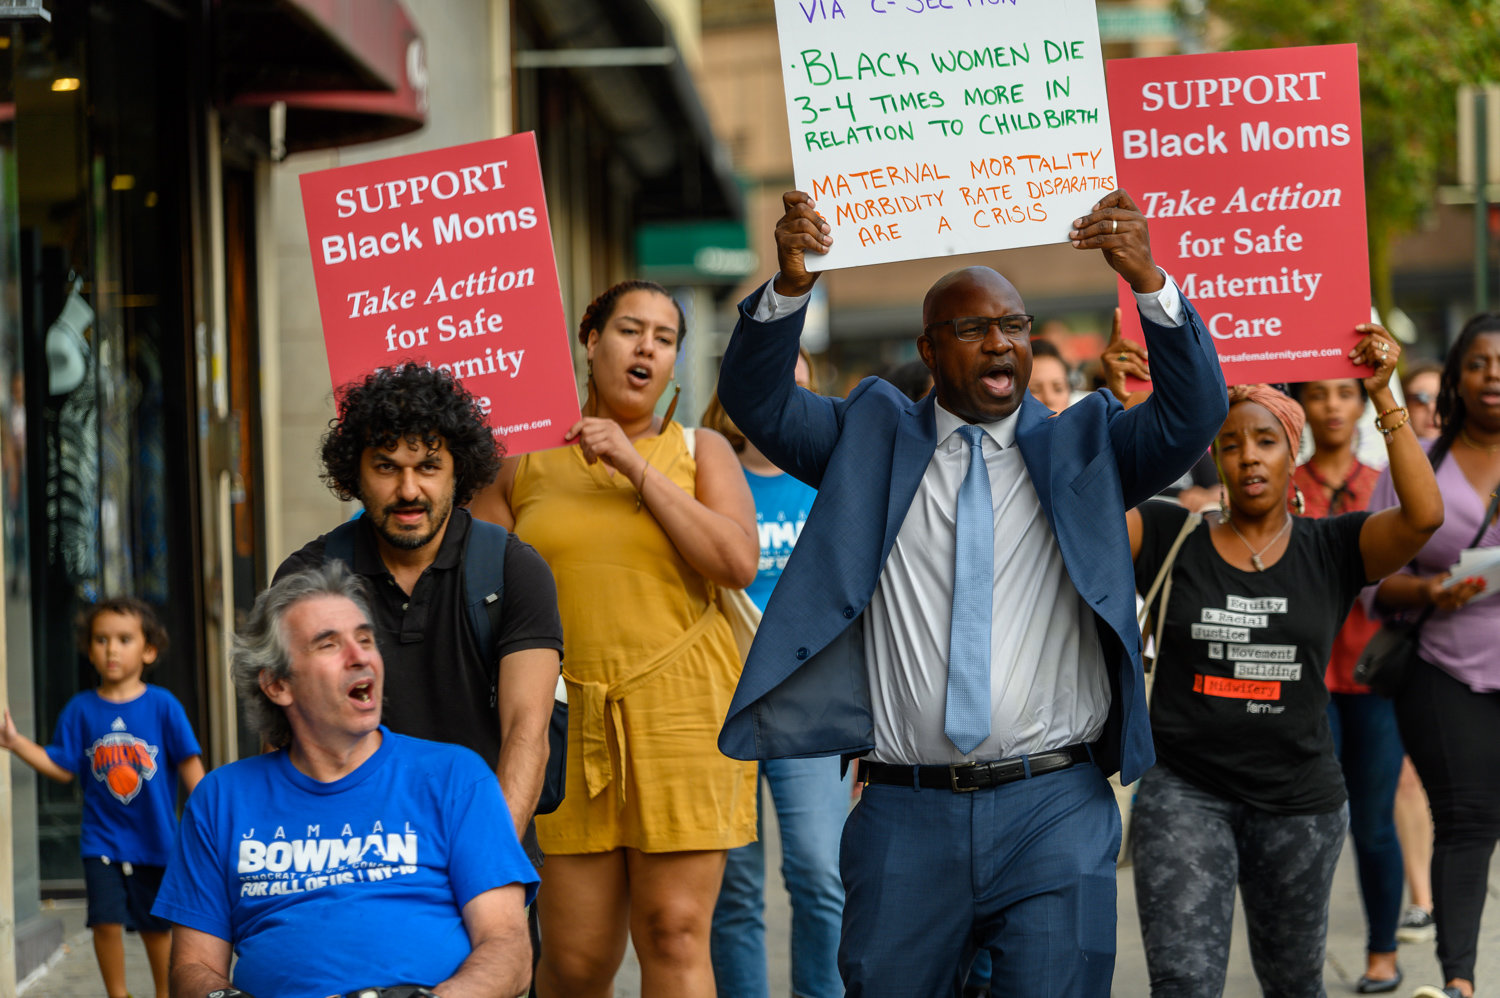 Jamaal Bowman, center right, participates in a march last September as part of his campaign to unseat U.S. Rep. Eliot Engel in the upcoming Democratic primary. Of all of Engel's challengers, Bowman has raised the most money.